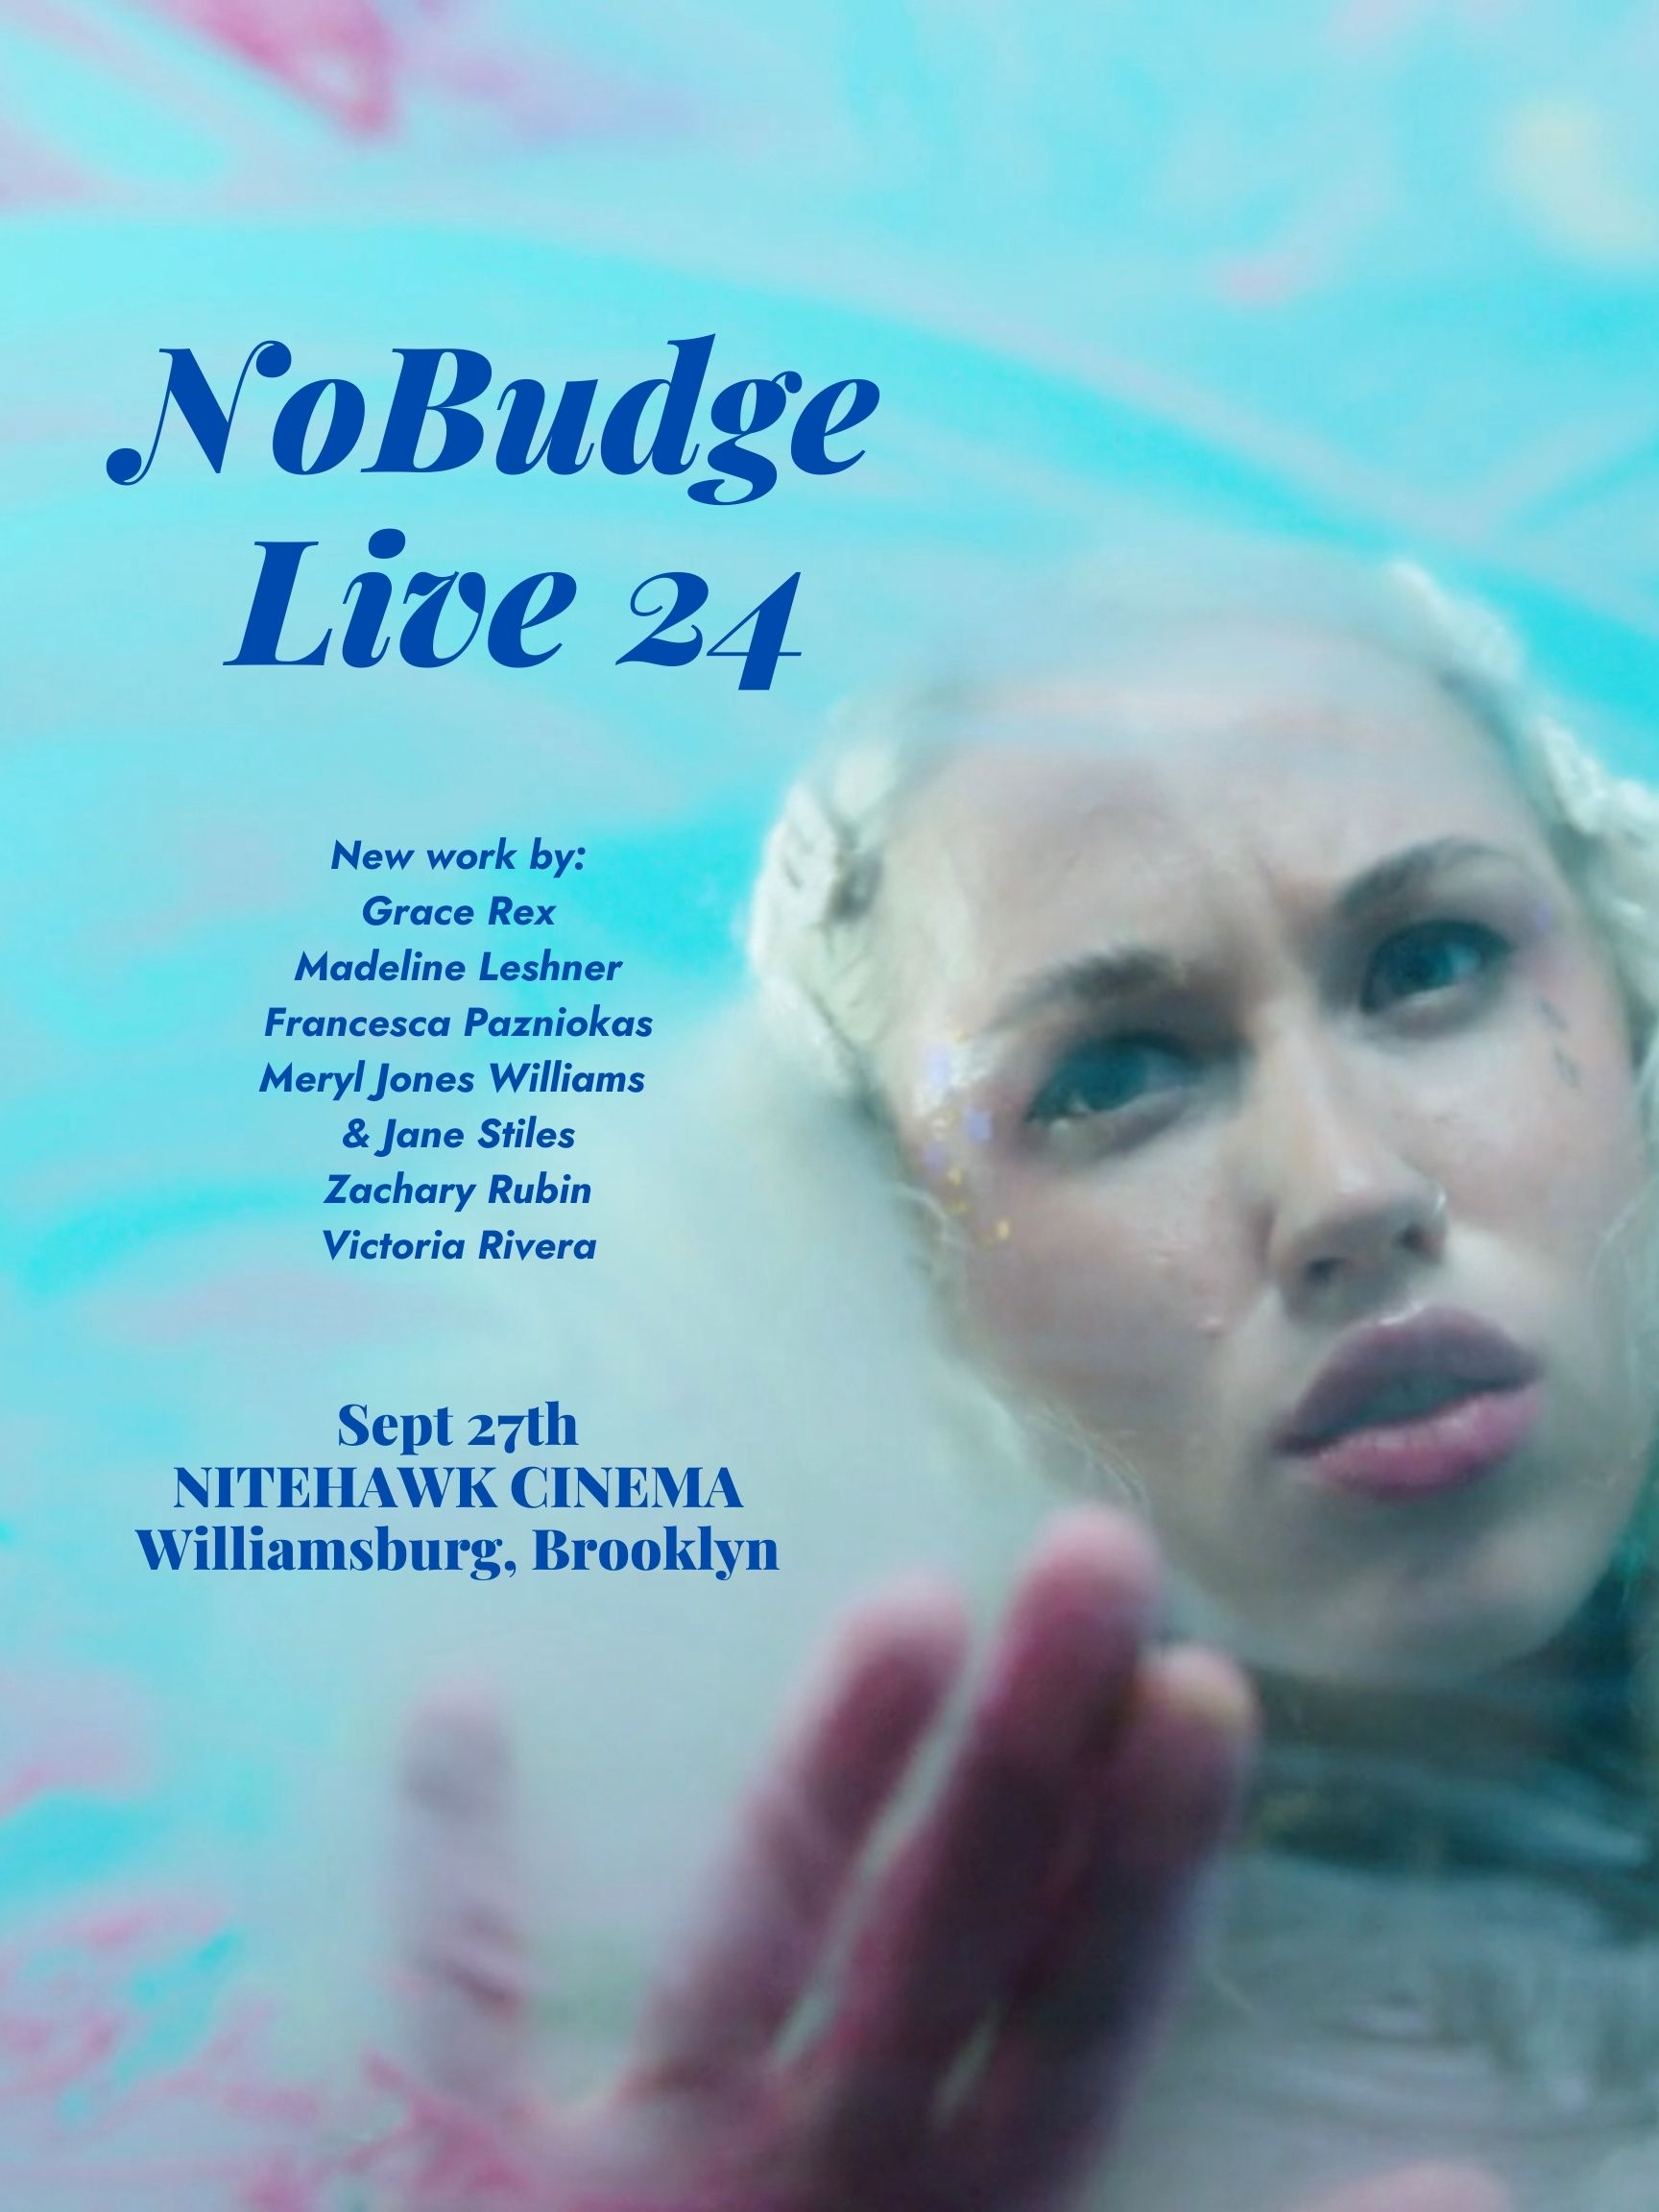 Poster for NoBudge Live #24